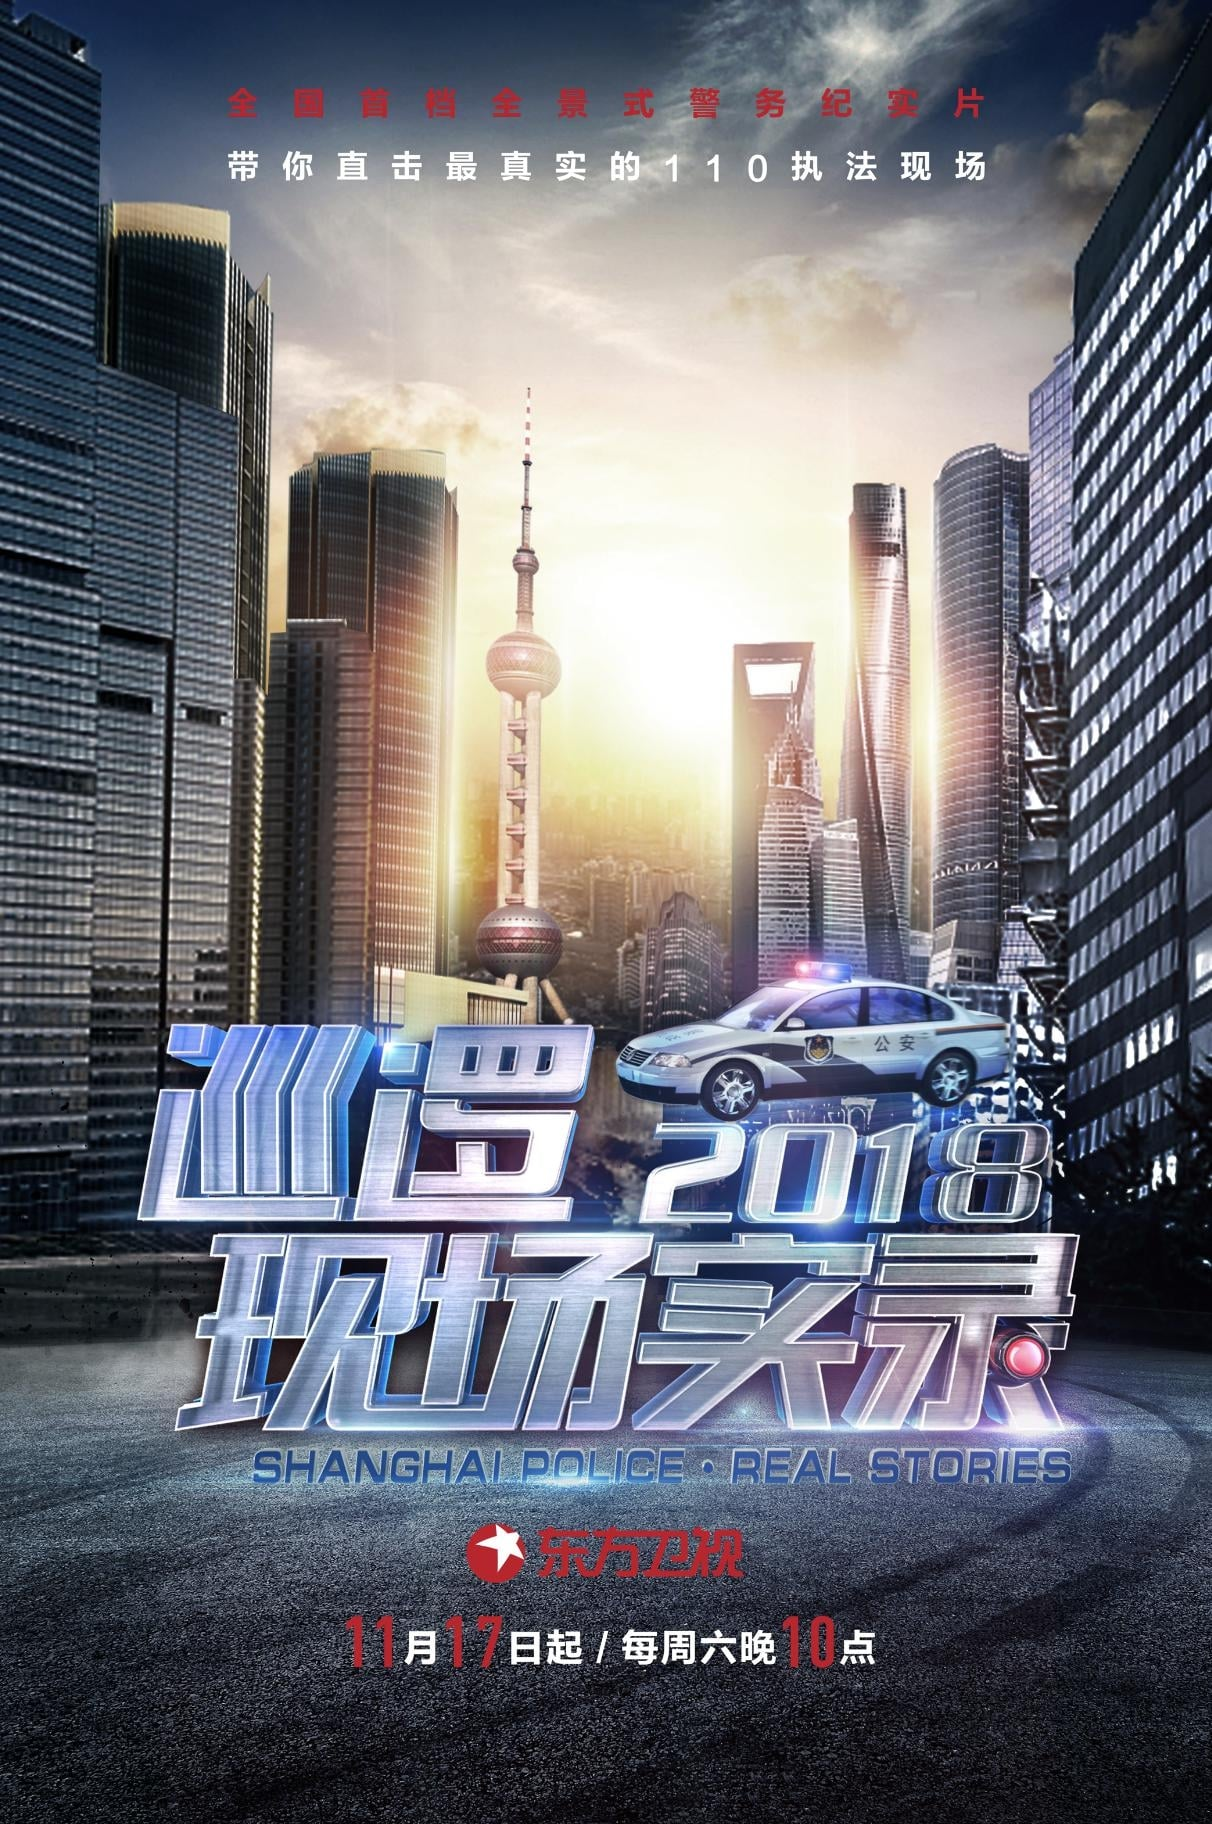 SHANGHAI POLICE REAL STORIES (2018)